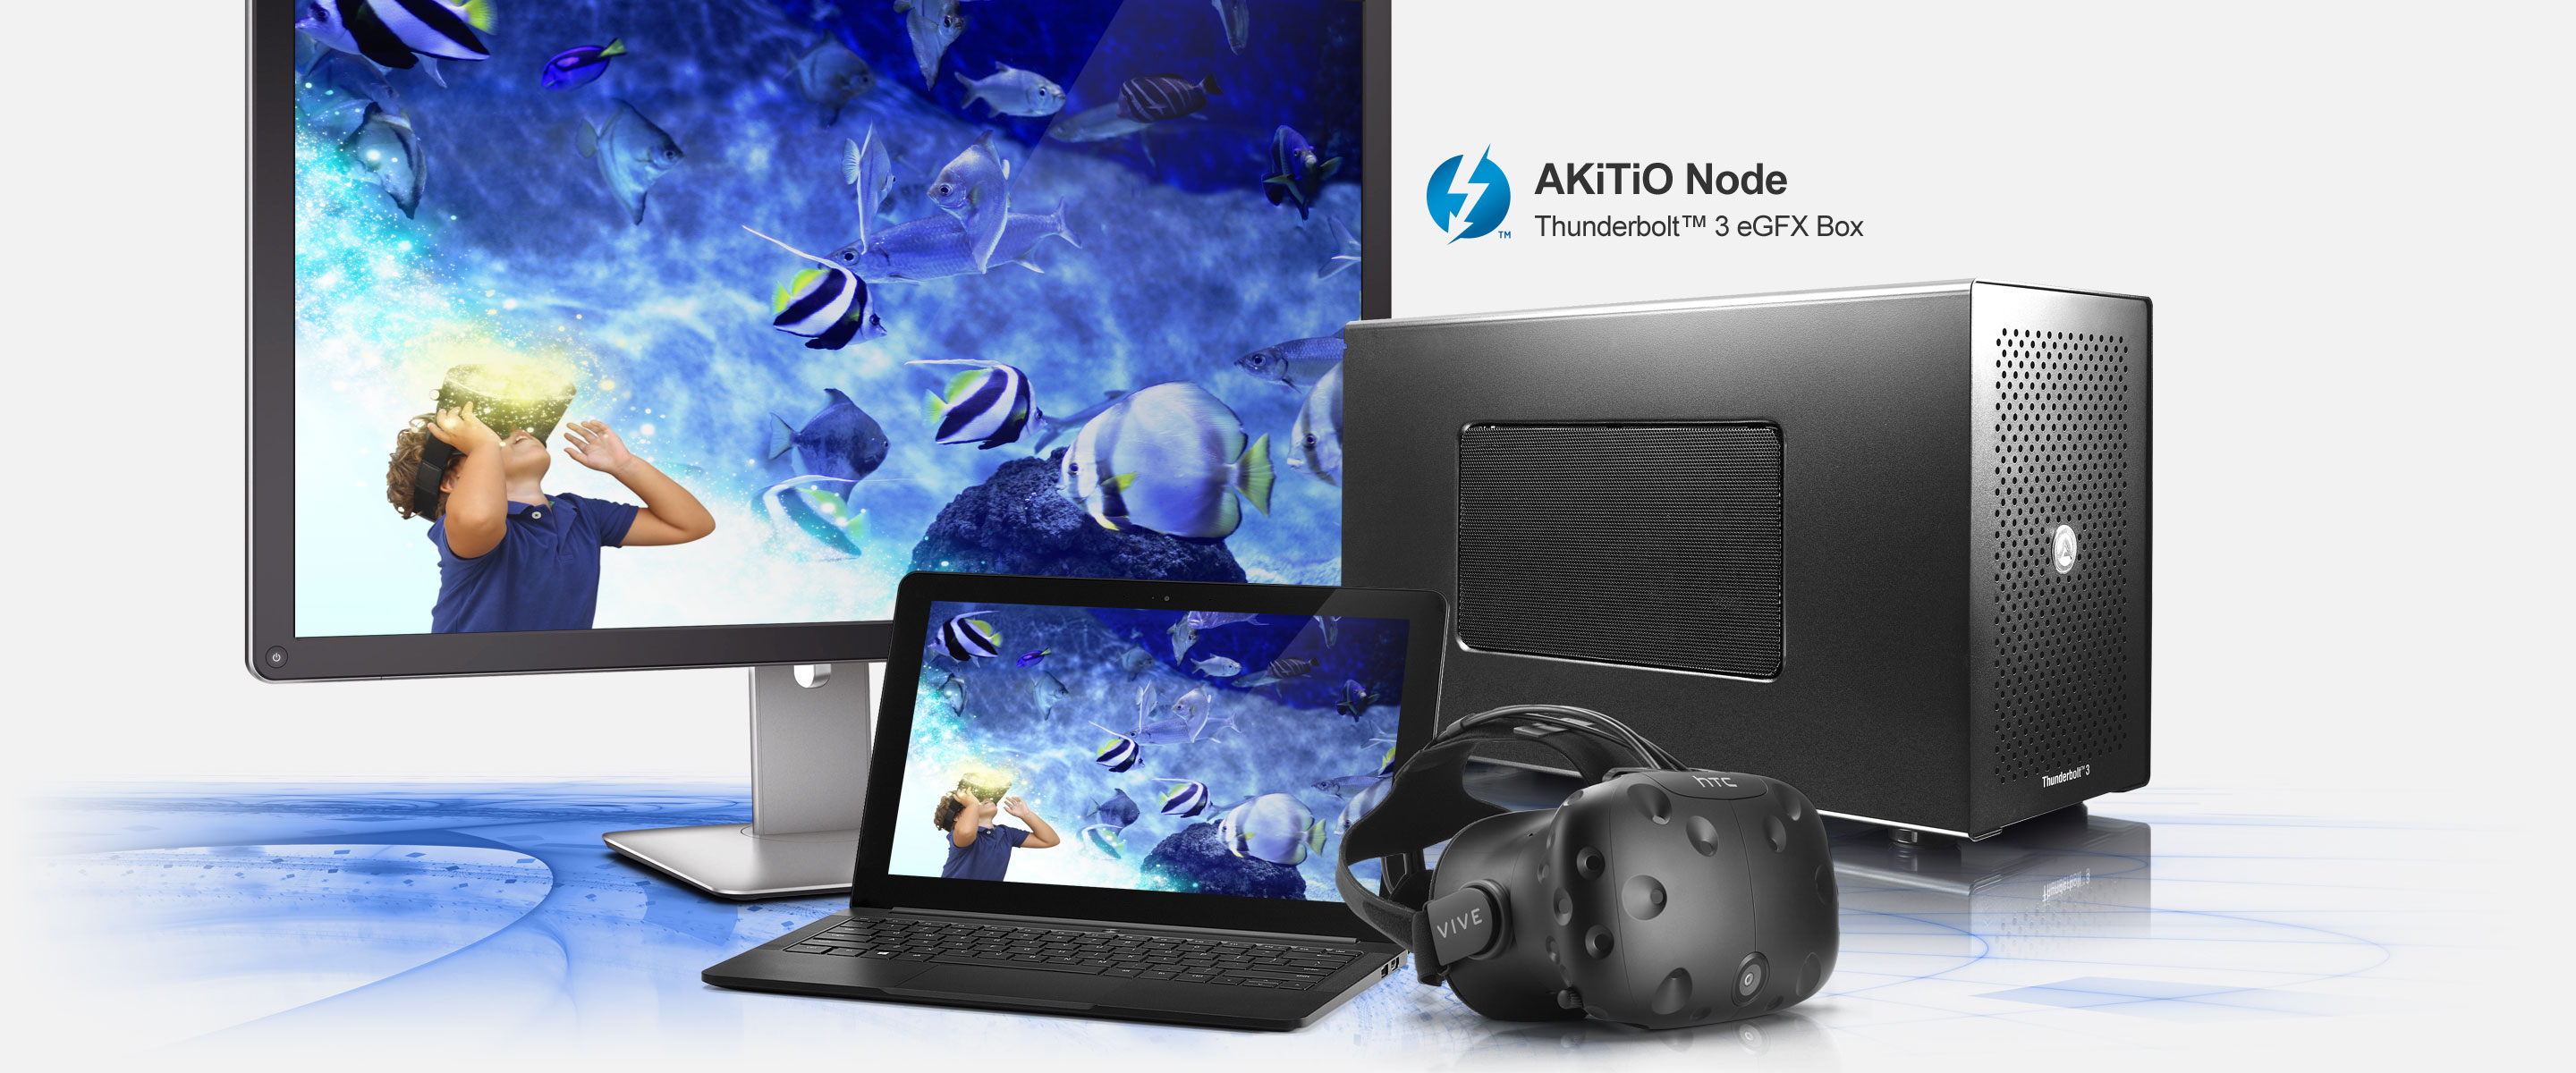 AKiTiO Node